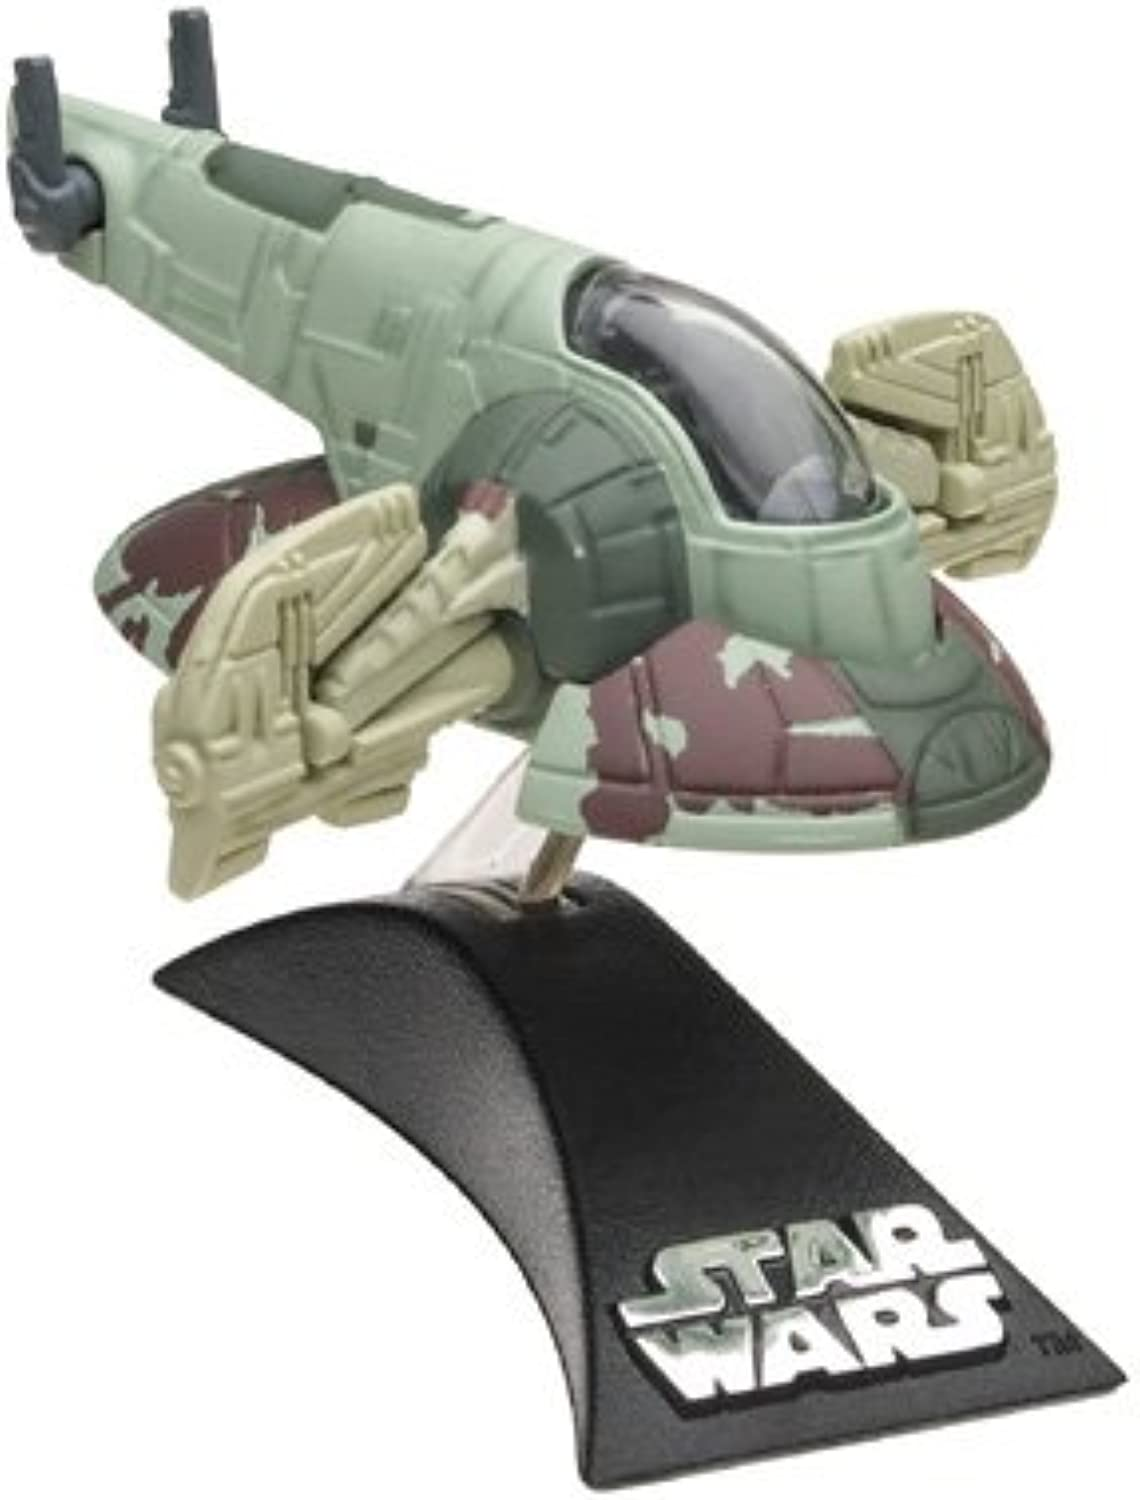 TITANIUM SERIES estrella guerras 3INCH VEHICLES - SLAVE 1 by Hasbro